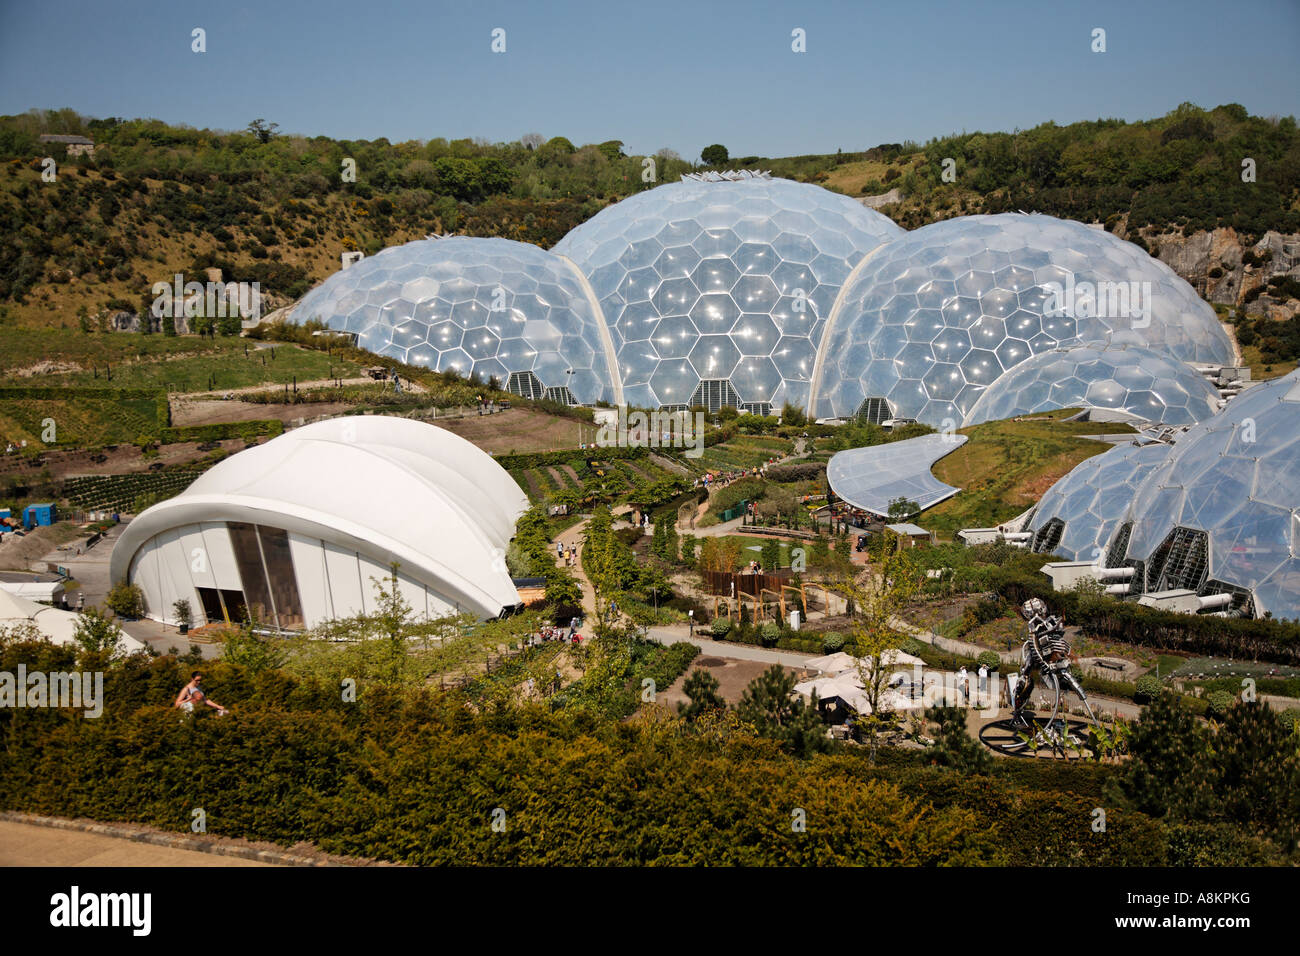 Wide View Of Domes At The Eden Project Cornwall U.K. Europe - Stock Image